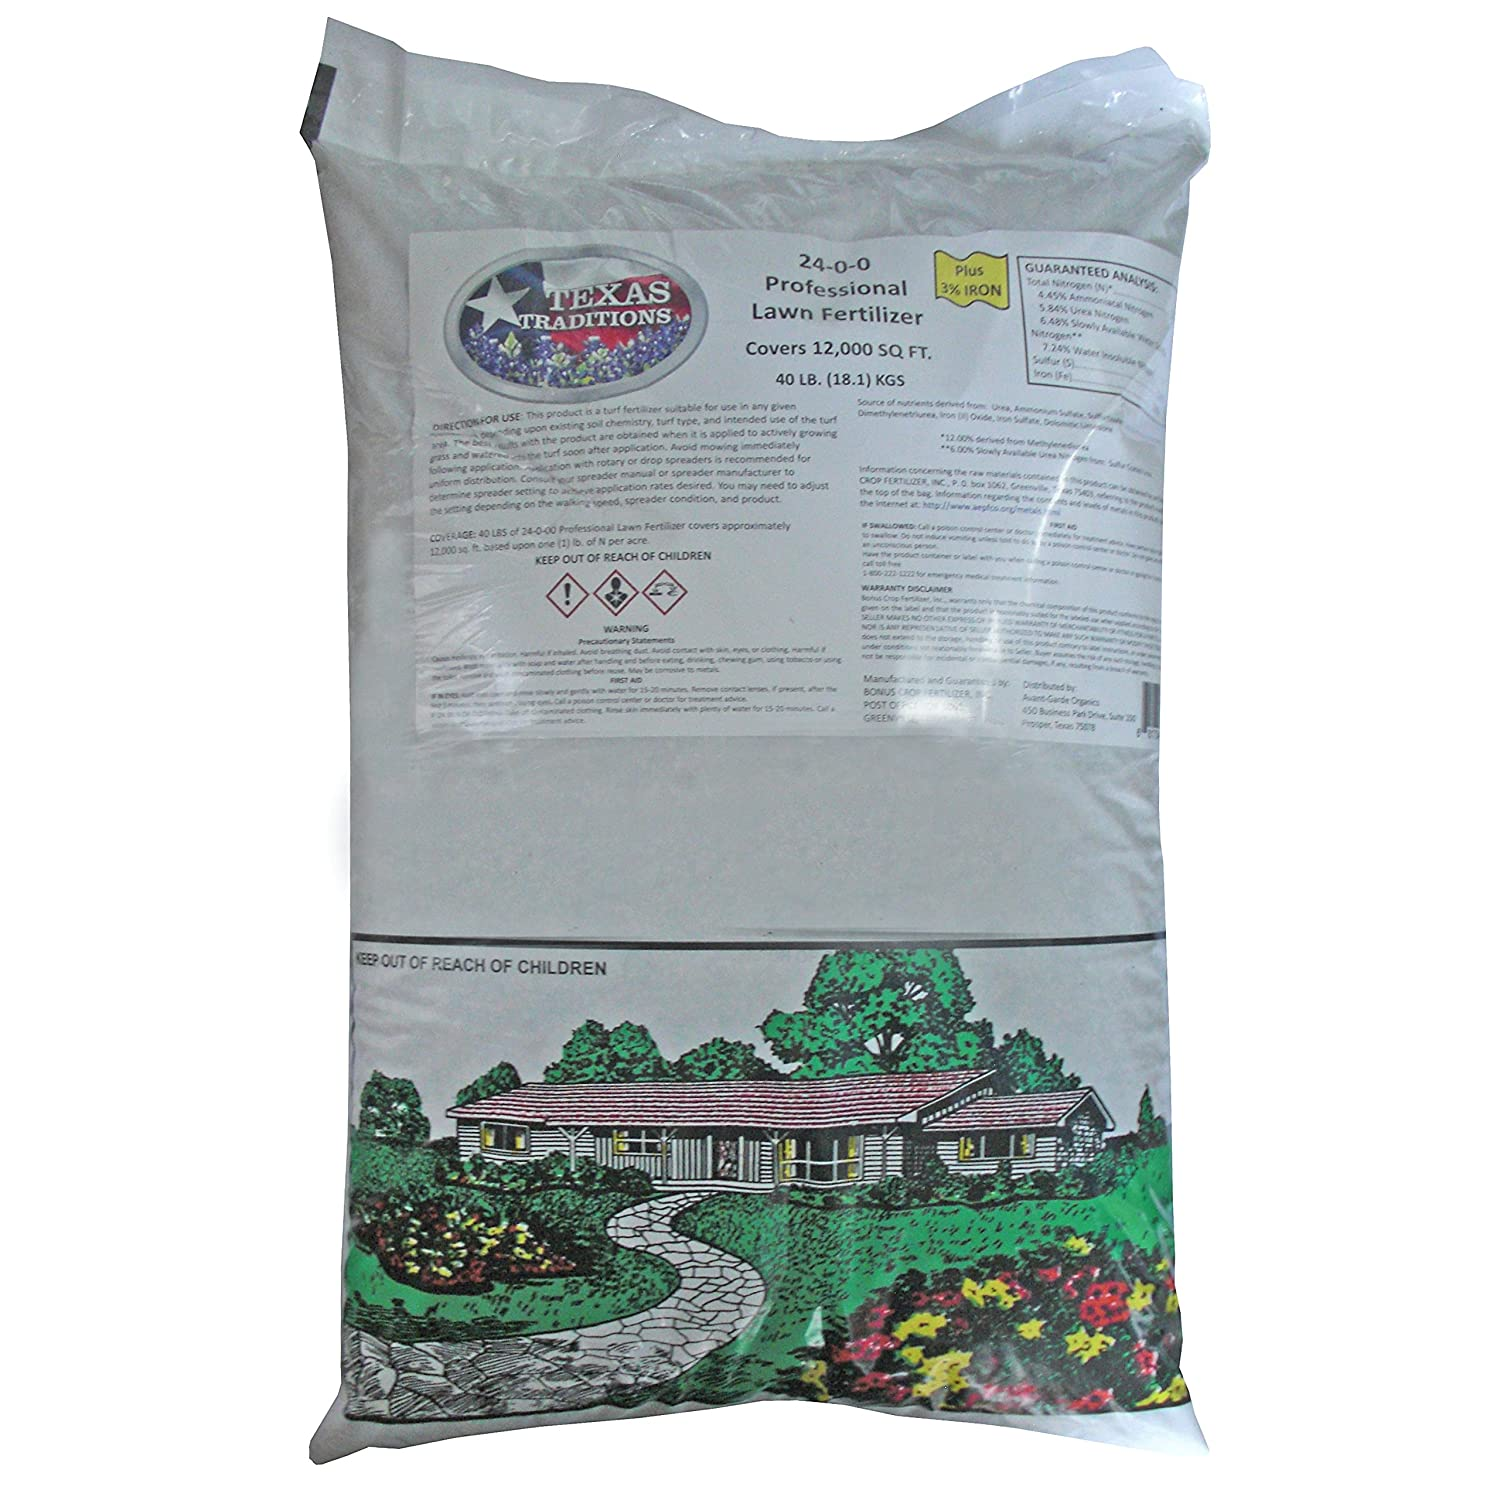 Texas Traditions 24-0-0 Professional Limited time sale Lawn lb. A surprise price is realized 40 Fertilizer